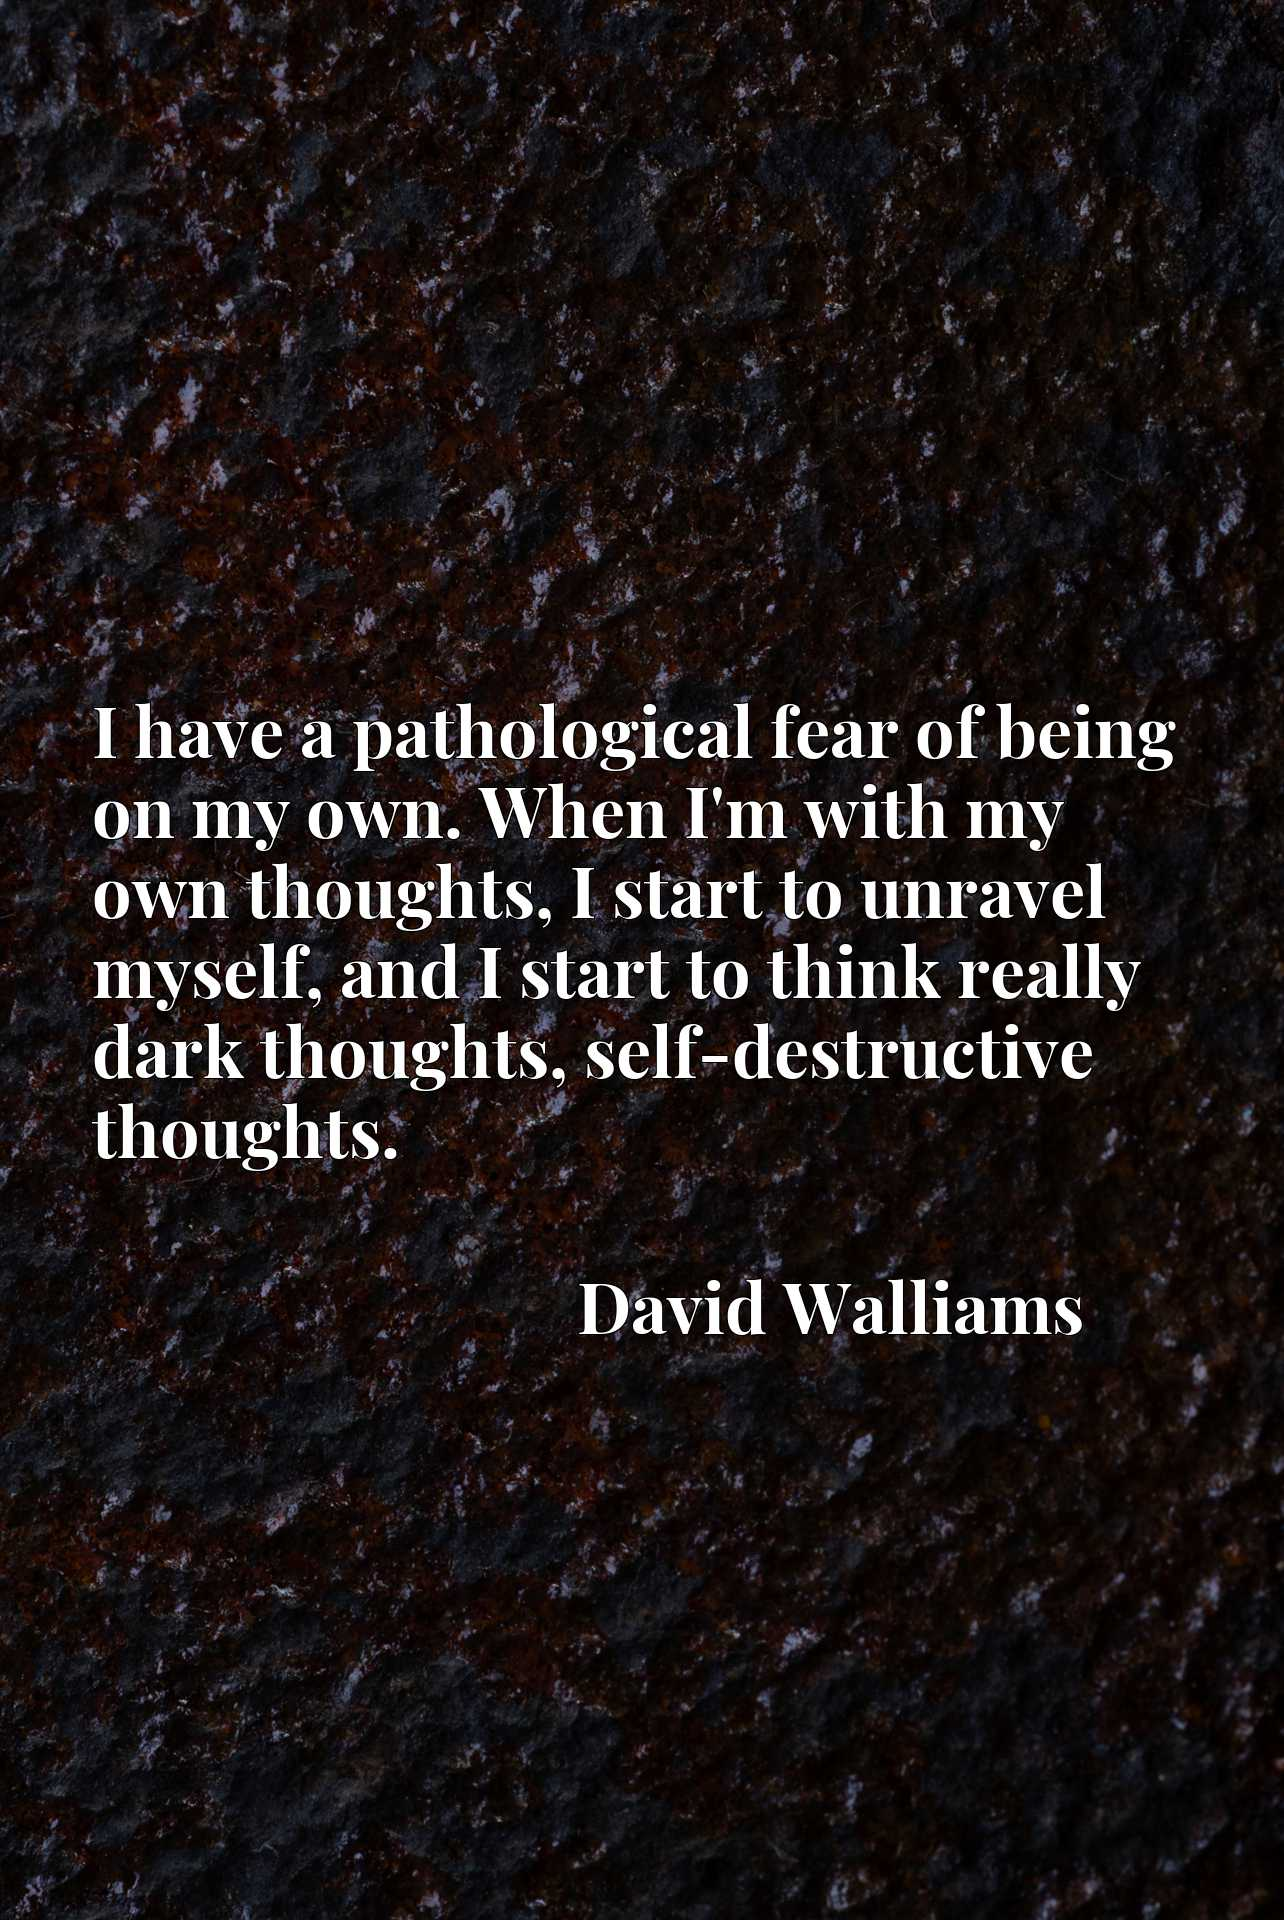 I have a pathological fear of being on my own. When I'm with my own thoughts, I start to unravel myself, and I start to think really dark thoughts, self-destructive thoughts.